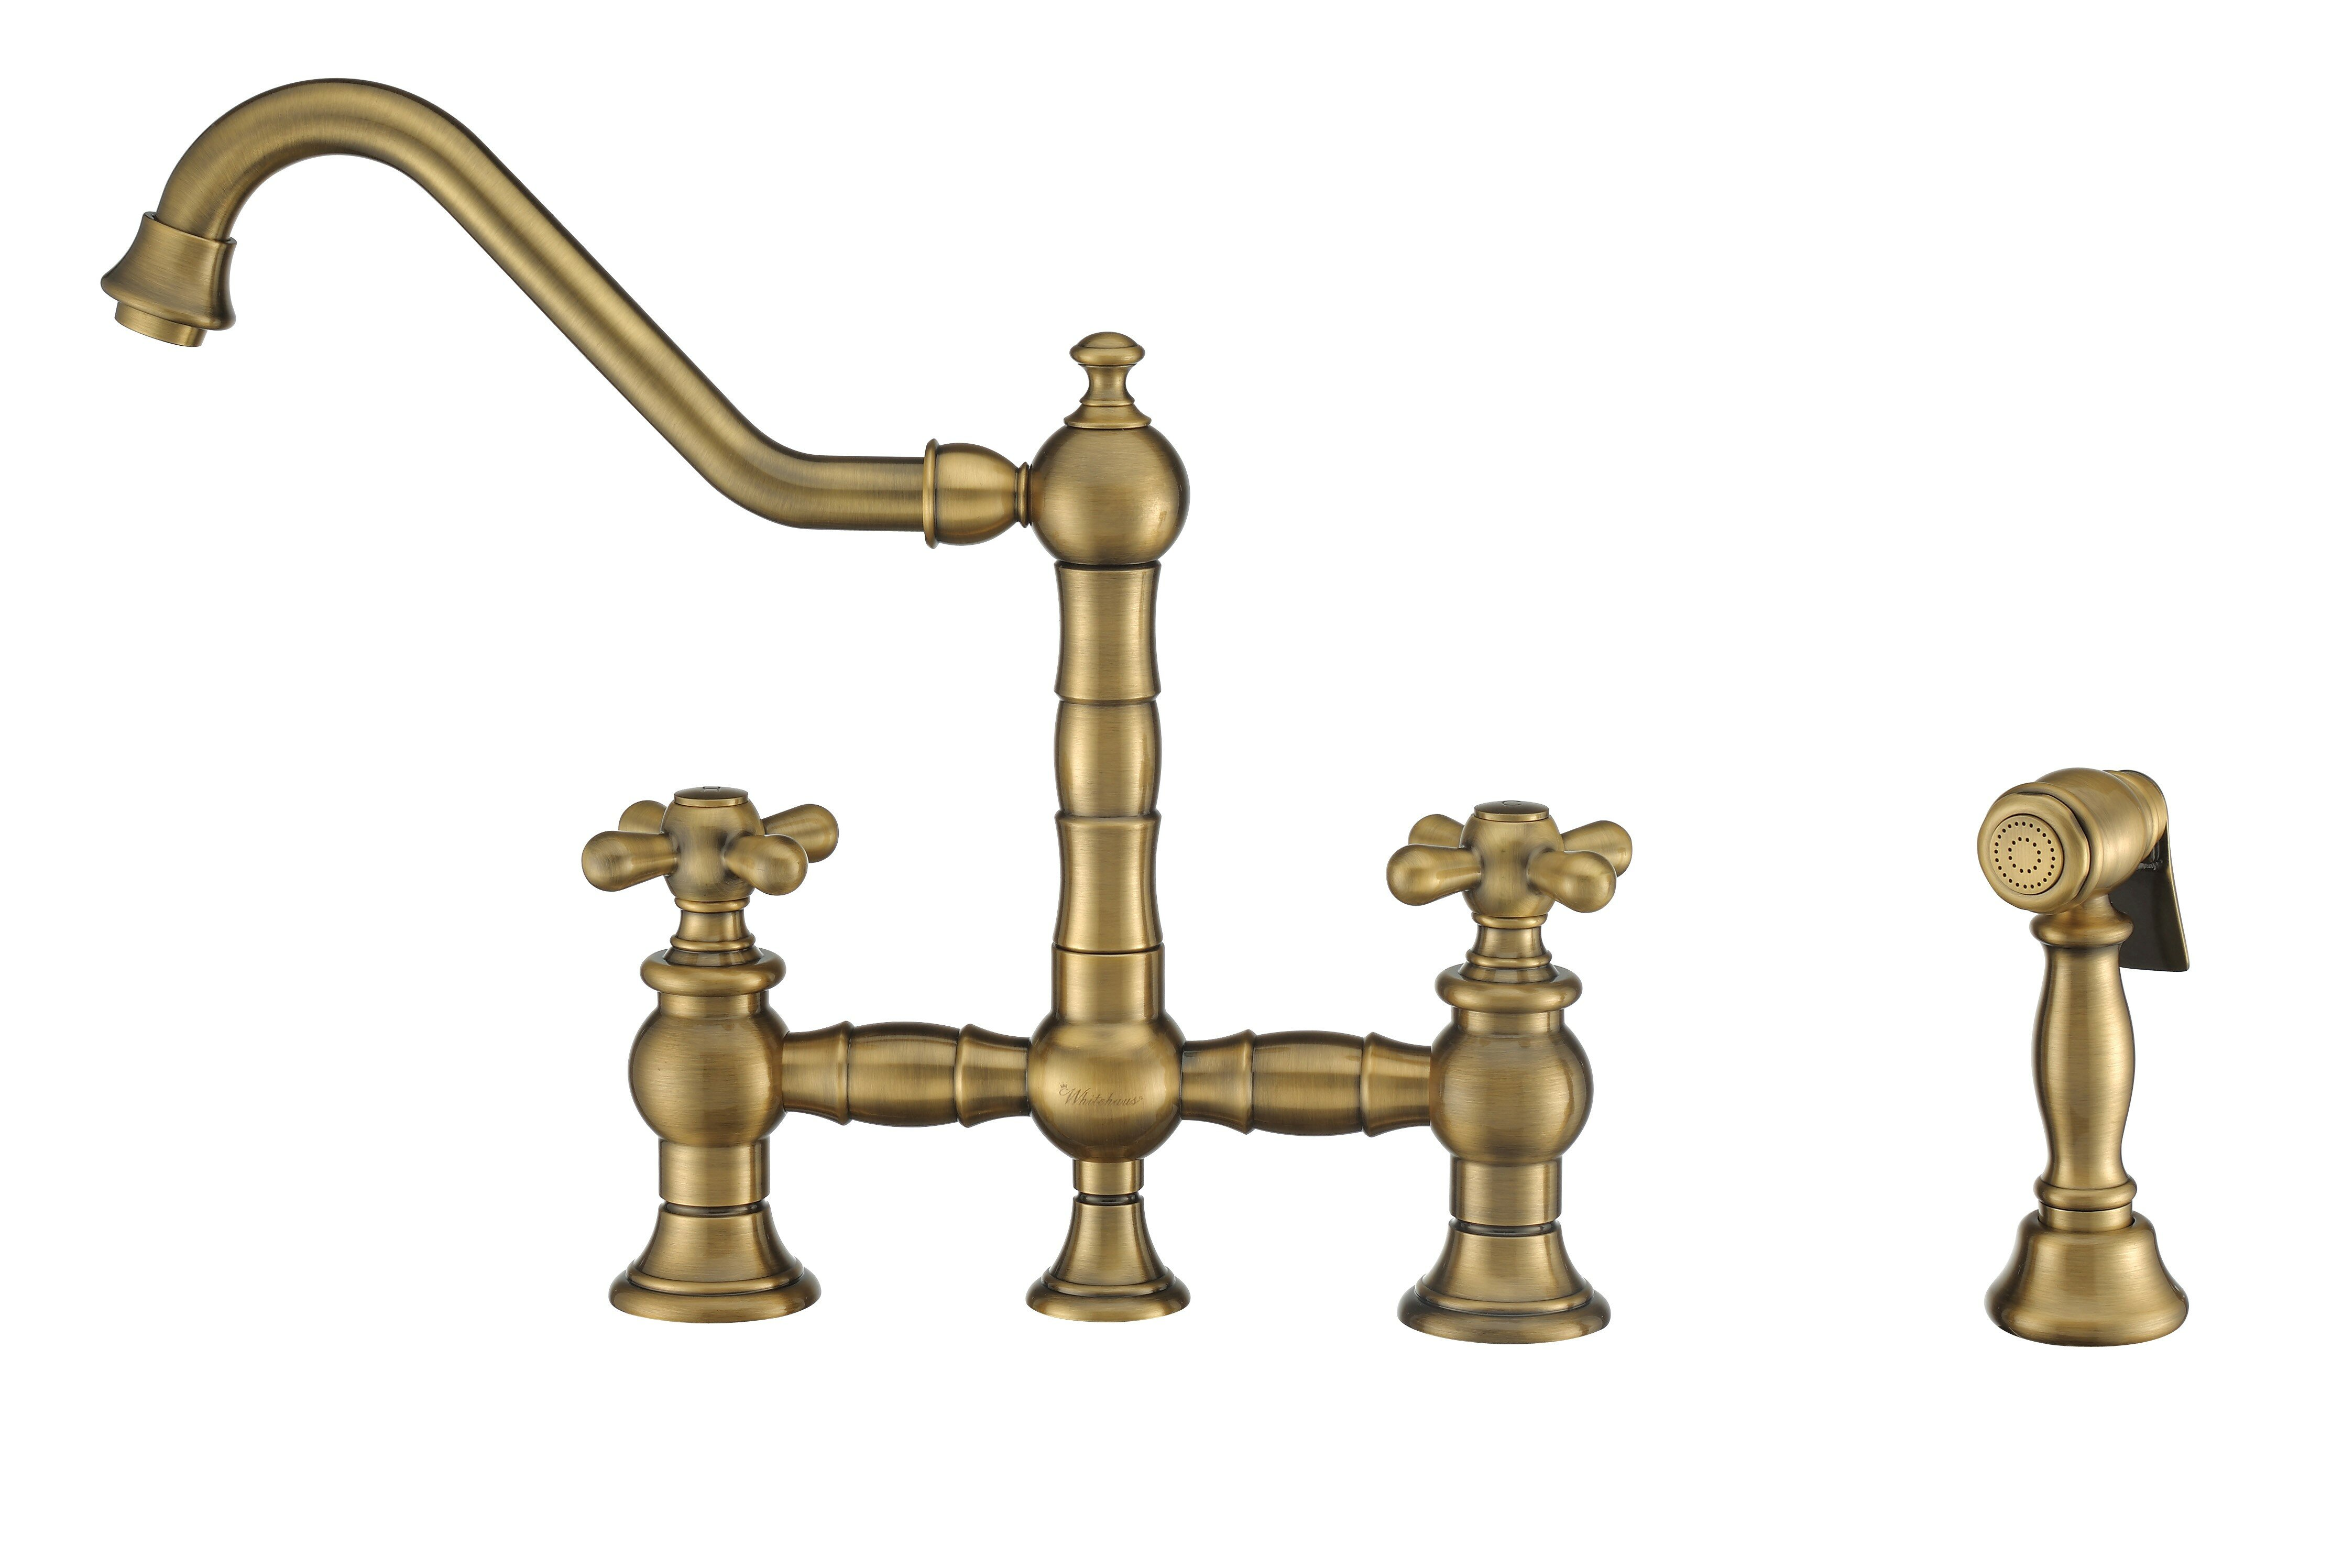 Whitehaus Collection Vintage Iii Plus Bridge Faucet With Side Spray